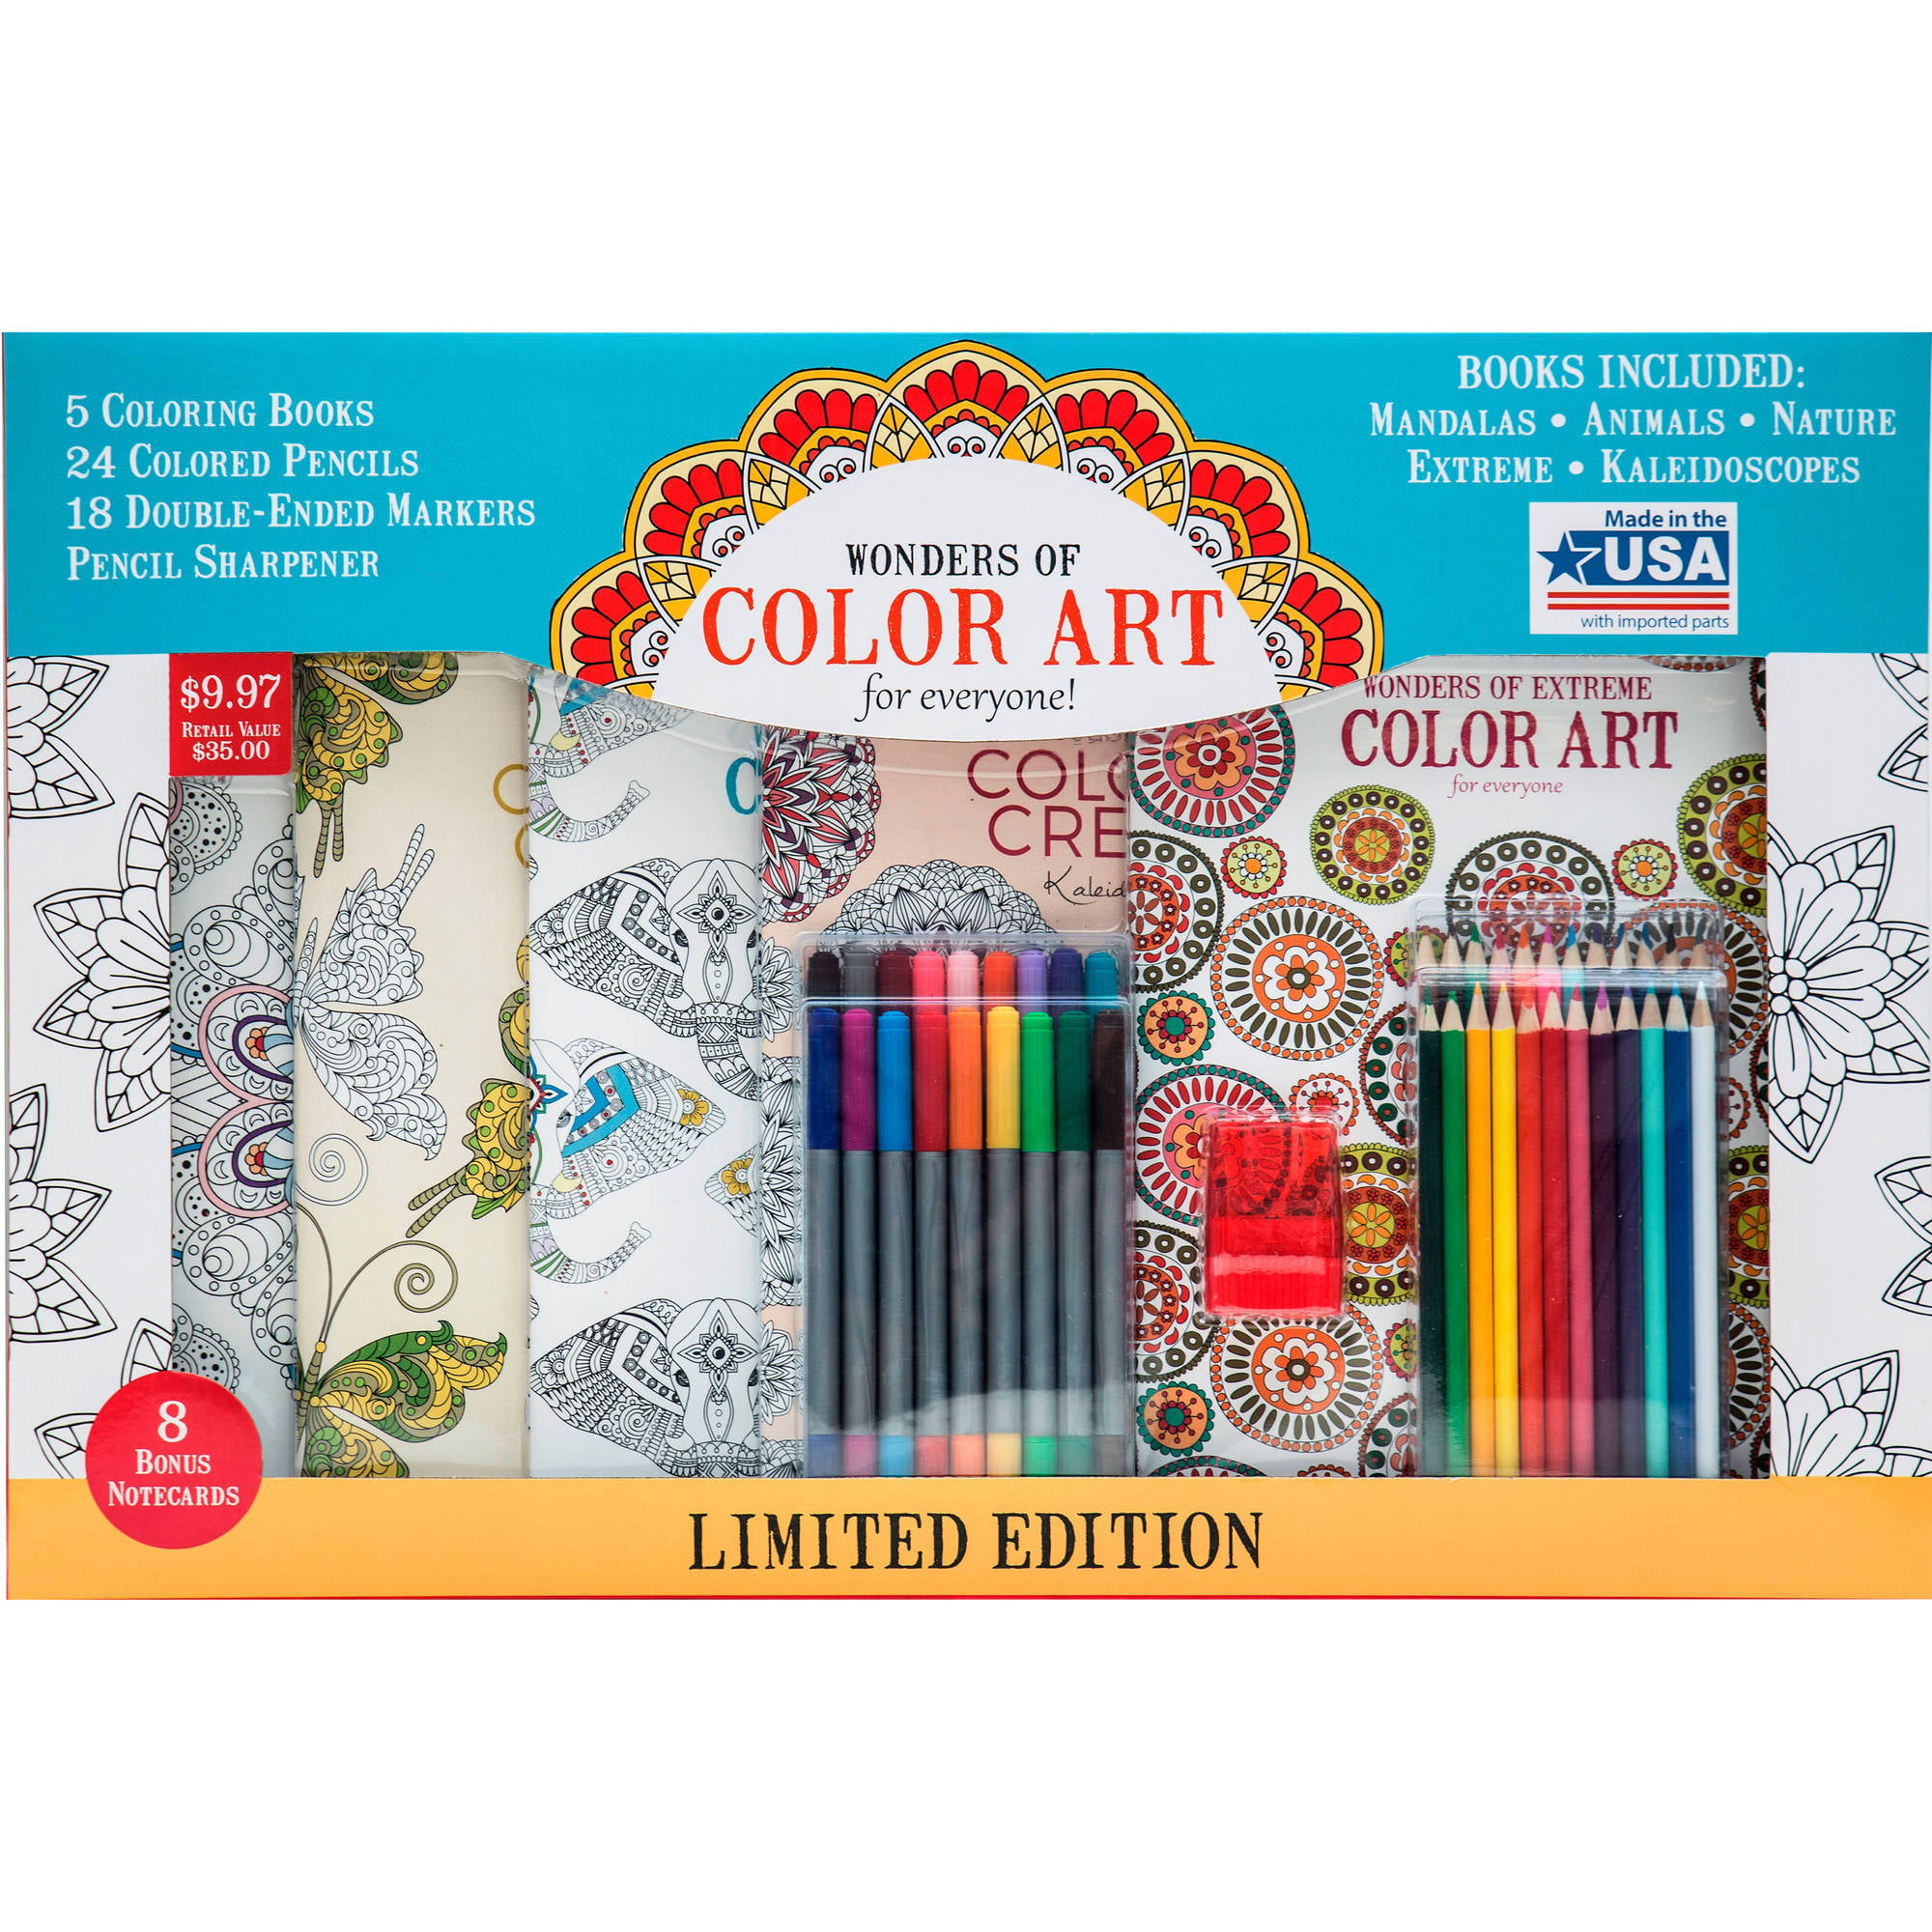 Leisure Arts Wonders of Color Art for Everyone Coloring Book Kit 31